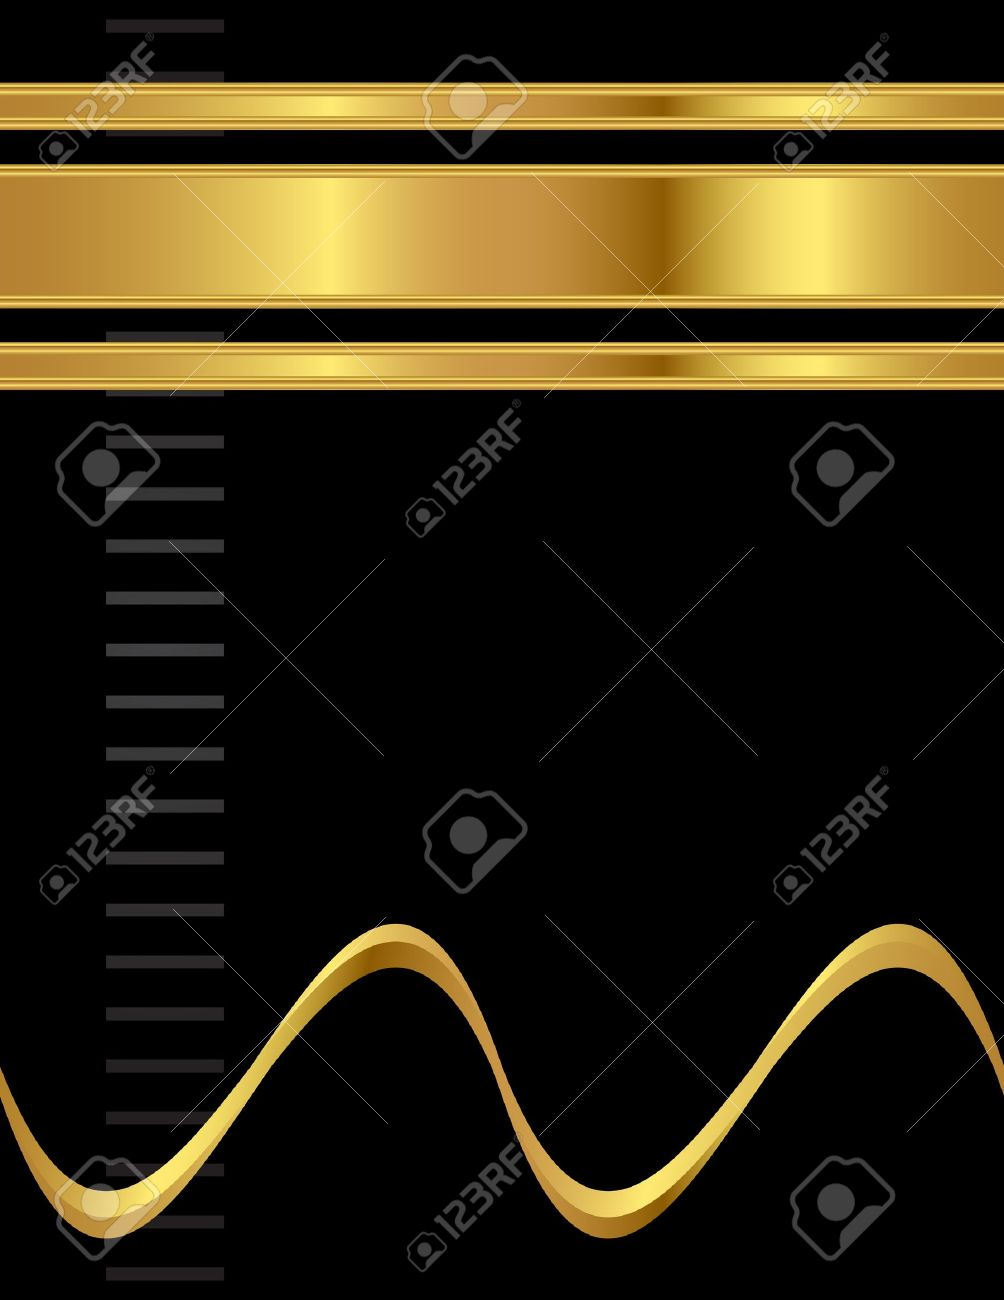 A gold and black, simple and clean, elegant and professional style A4 background vector. Stock Vector - 11191060